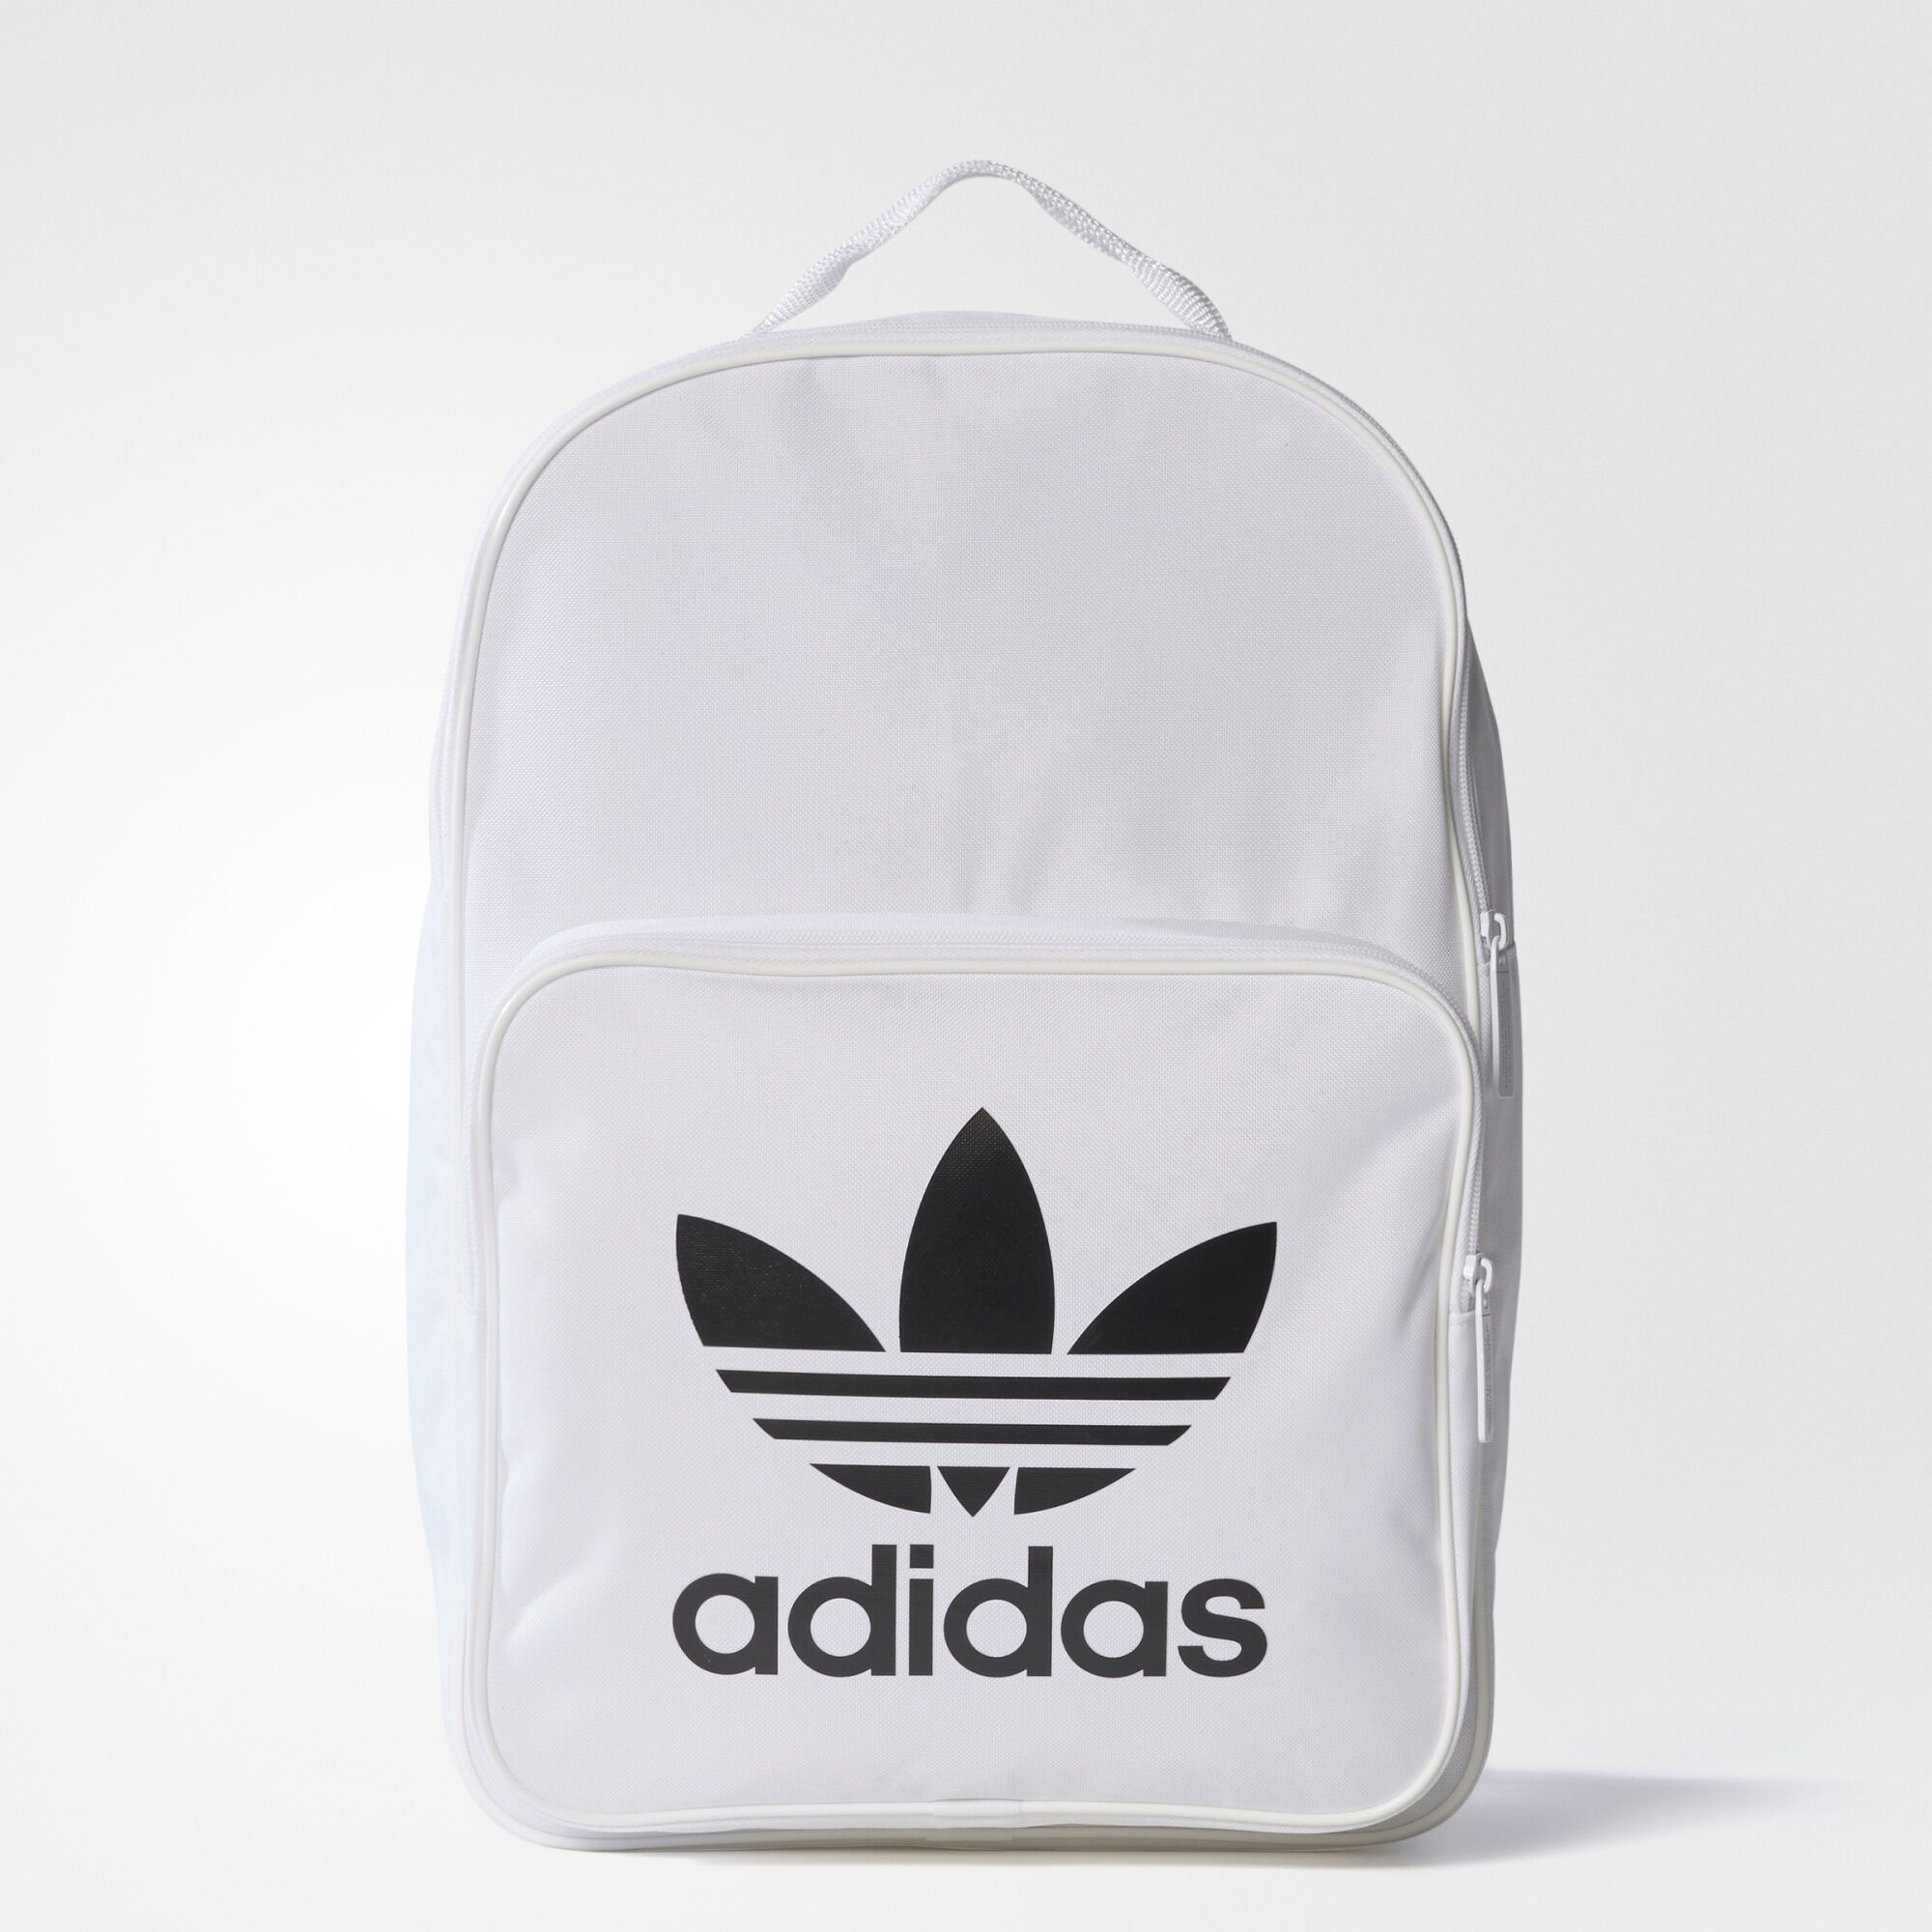 Buy adidas white backpack   OFF79% Discounted 8e80b010c9174